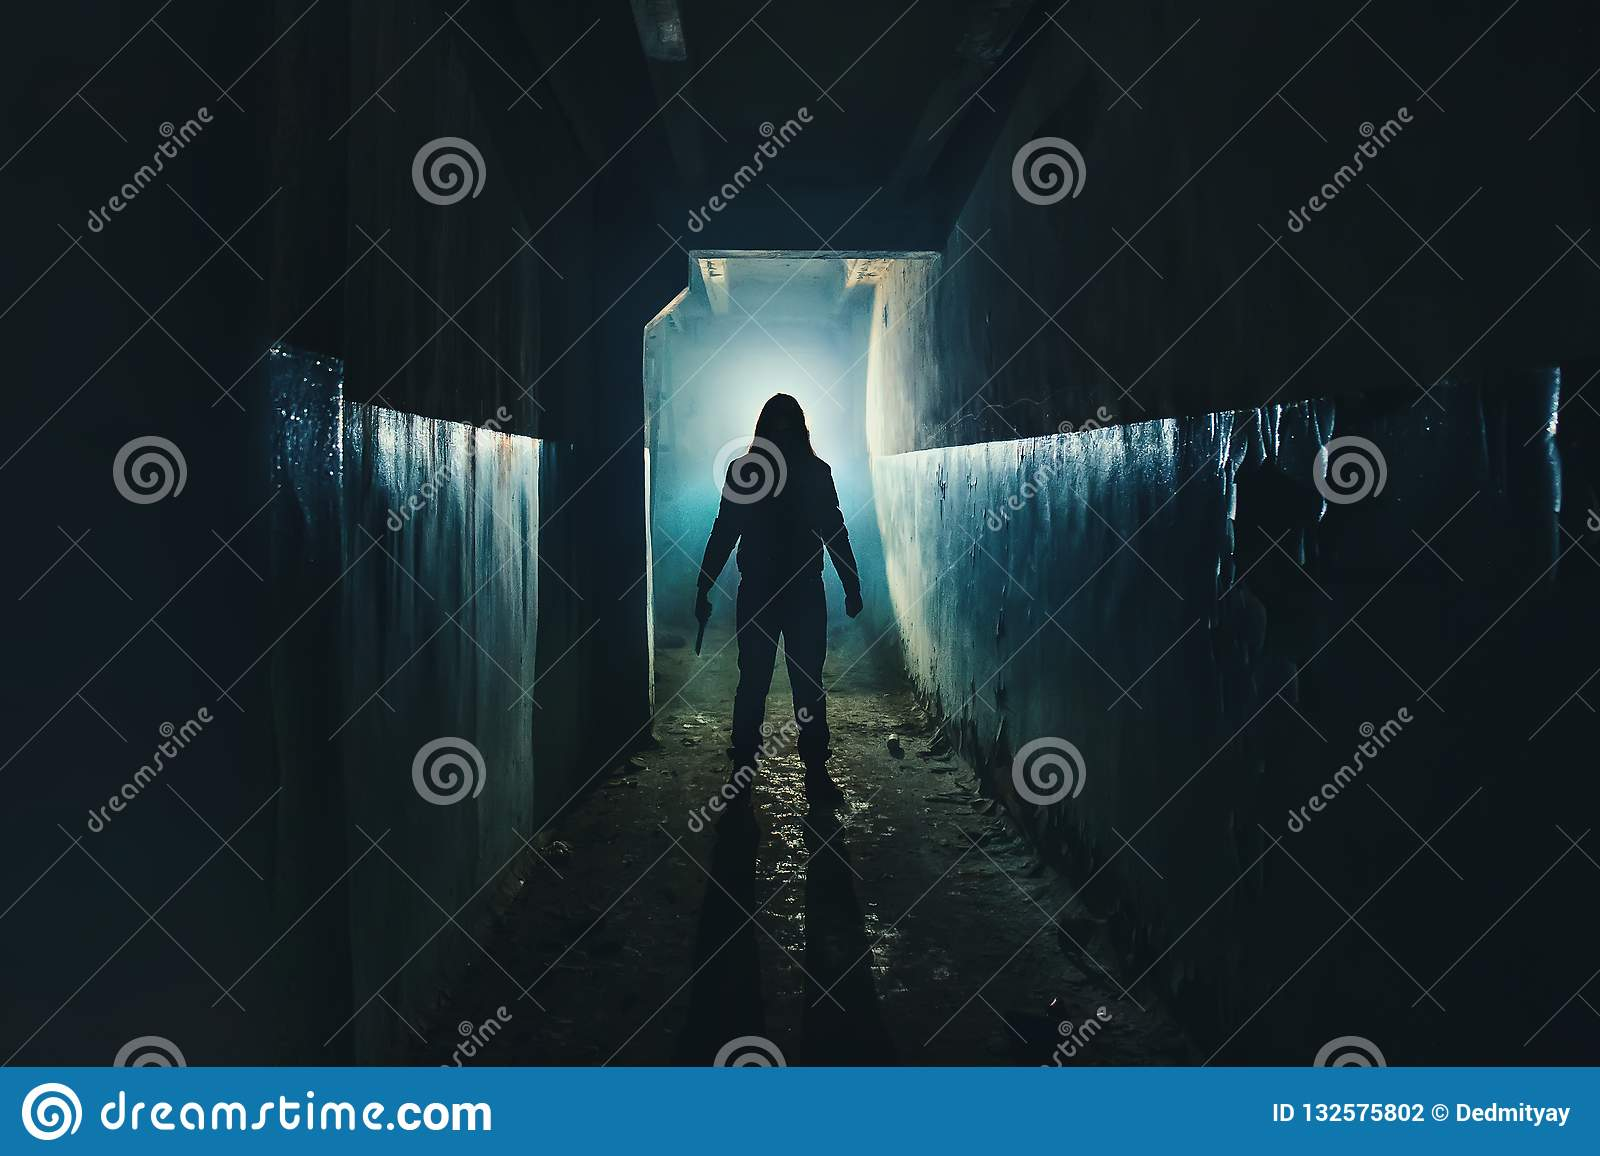 Silhouette of man maniac or killer or horror murderer with knife in hand in dark creepy and spooky corridor. Criminal robber